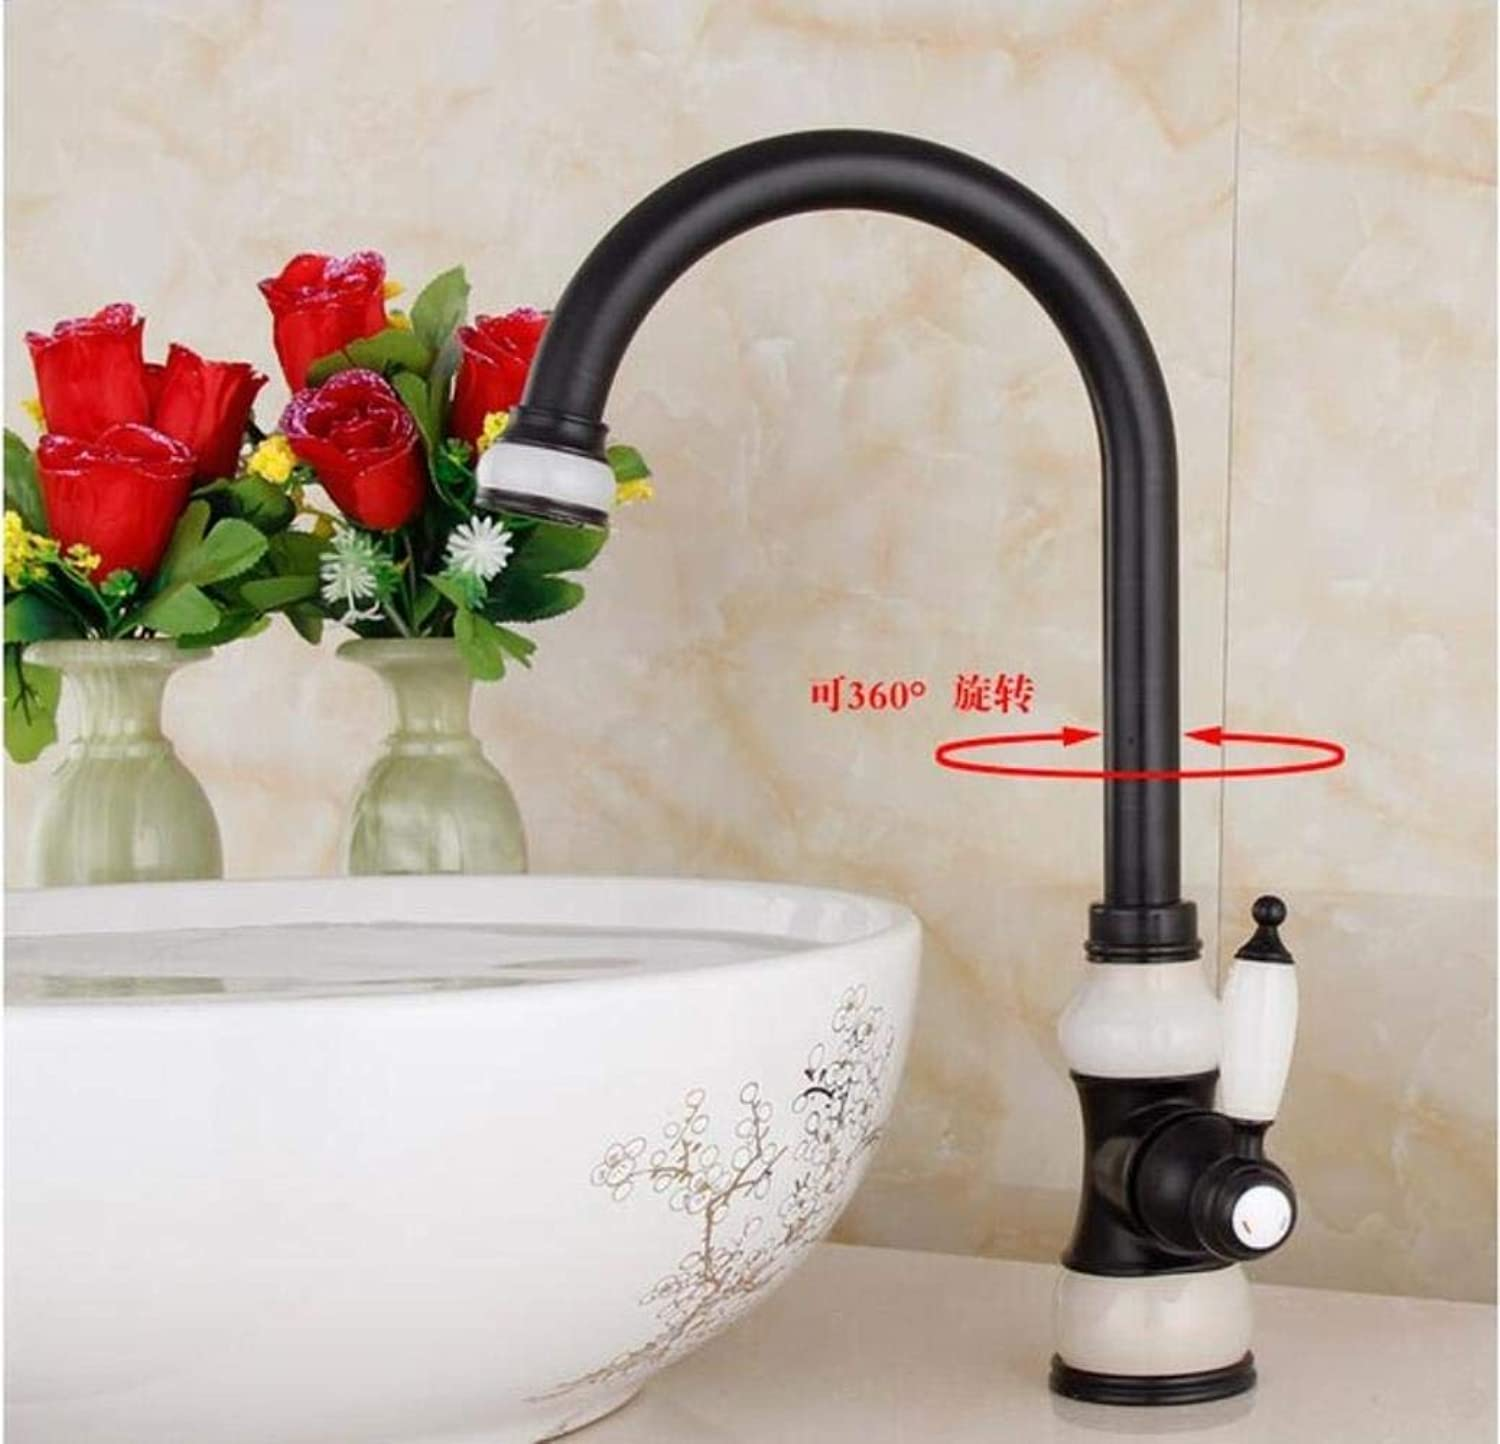 Kai&Guo Fashion gold hot and cold single lever kitchen Faucet Jade and Brass sink faucet tap bathroom basin faucet sink tap,black